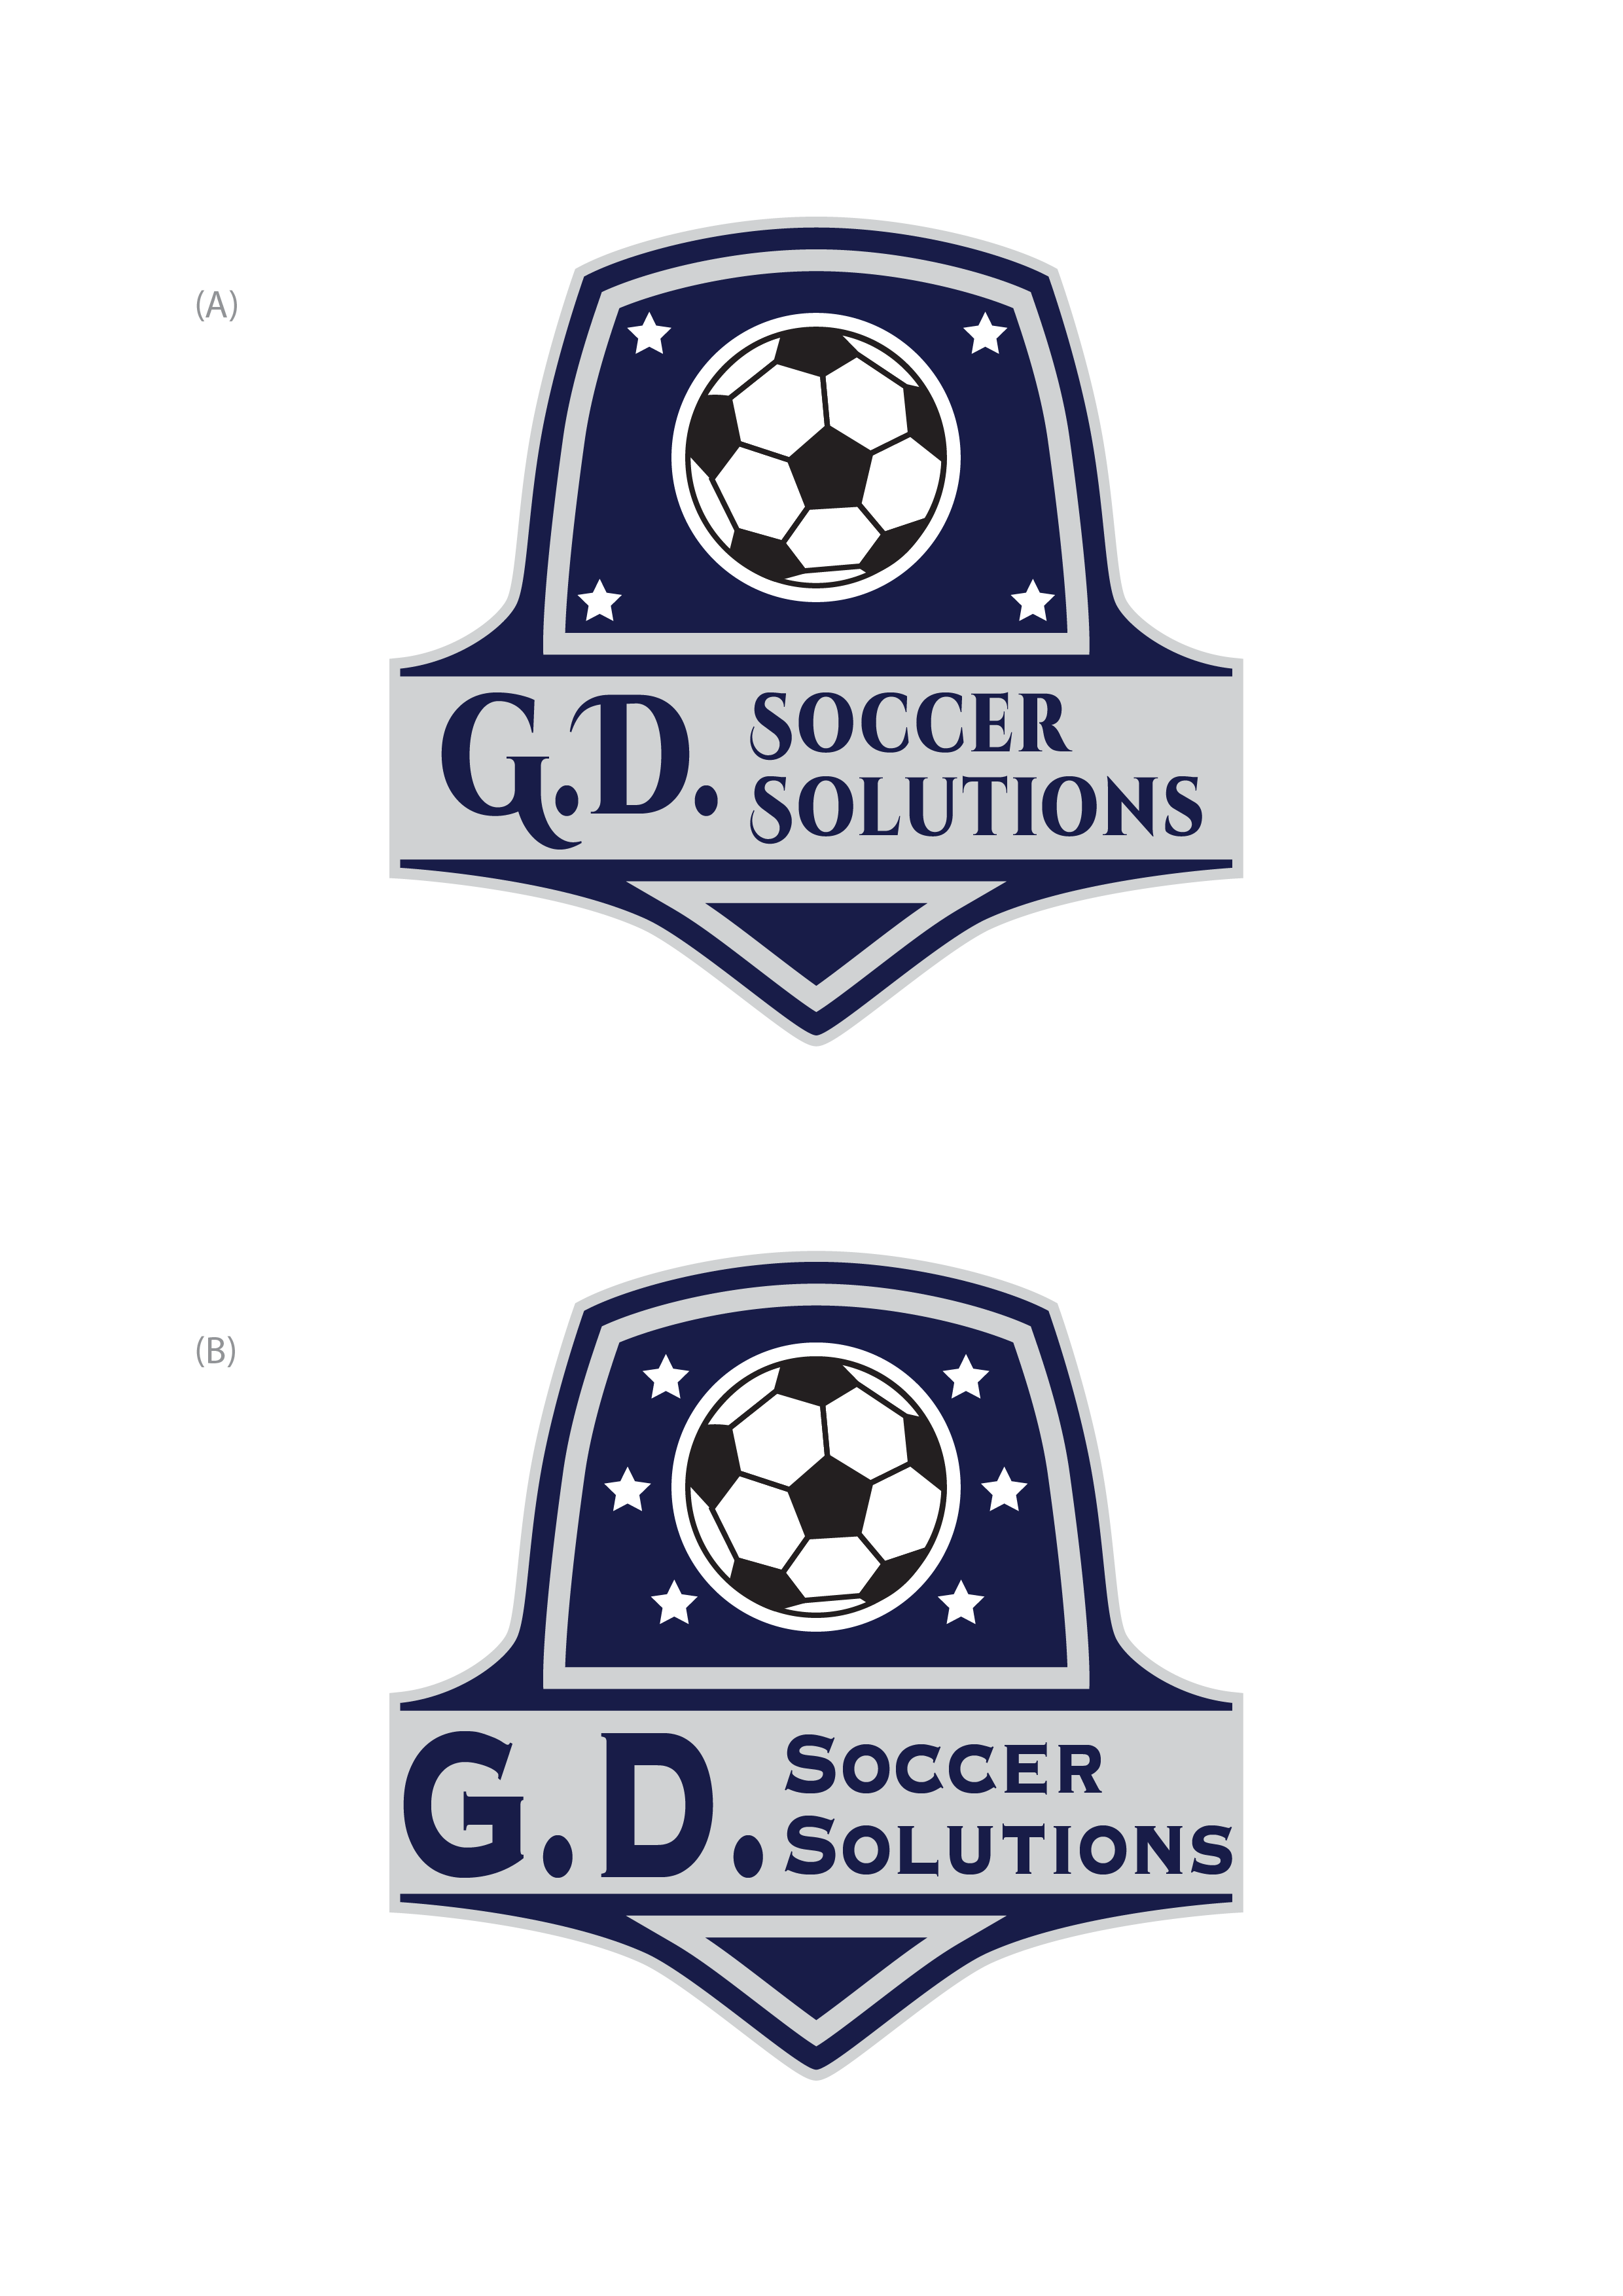 G.D. Soccer Solutions_r1.png